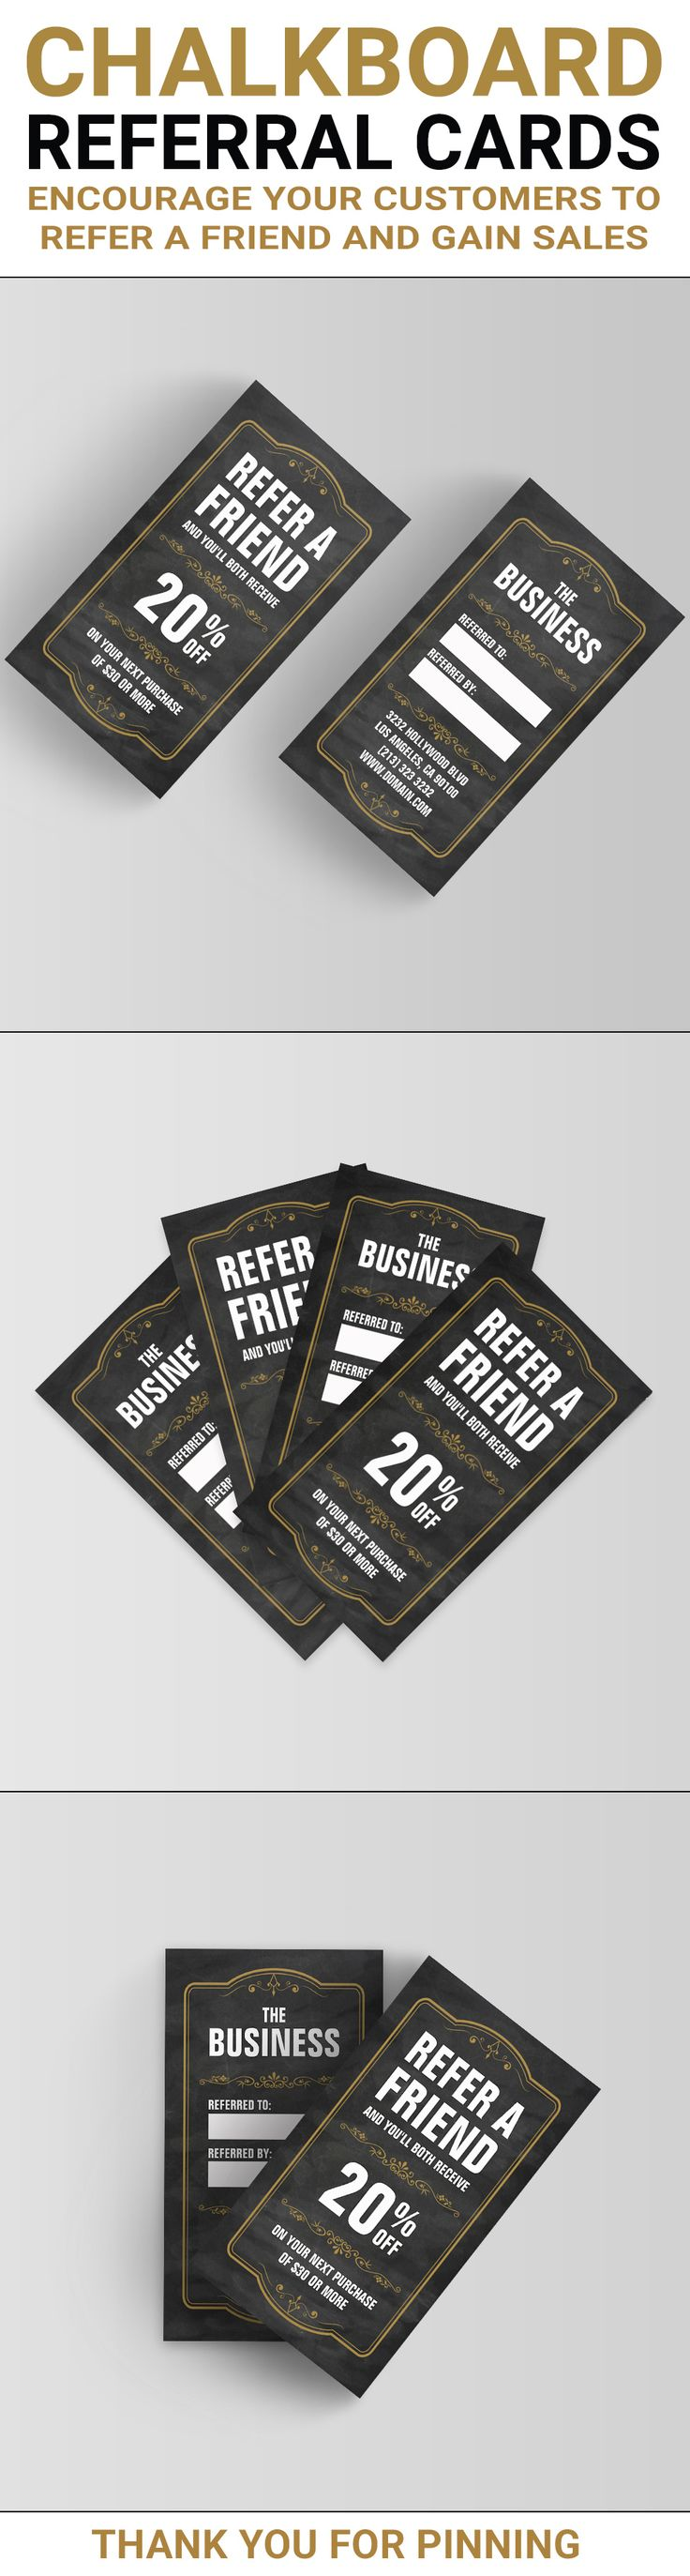 "Refer a Friend Referral Cards. Encourage your customers to refer a friend and generate more sales by offering a discount on one of your products or services. The referral card design shows a chalkboard like background with a clay colored floral frame and floral elements. The chalkboard referral cards come in the same size as a standard business card of 3.5"" x 2"". Check it out and  customize it to fit your needs. This chalkboard refer a friend referral card was created by J32 Design"